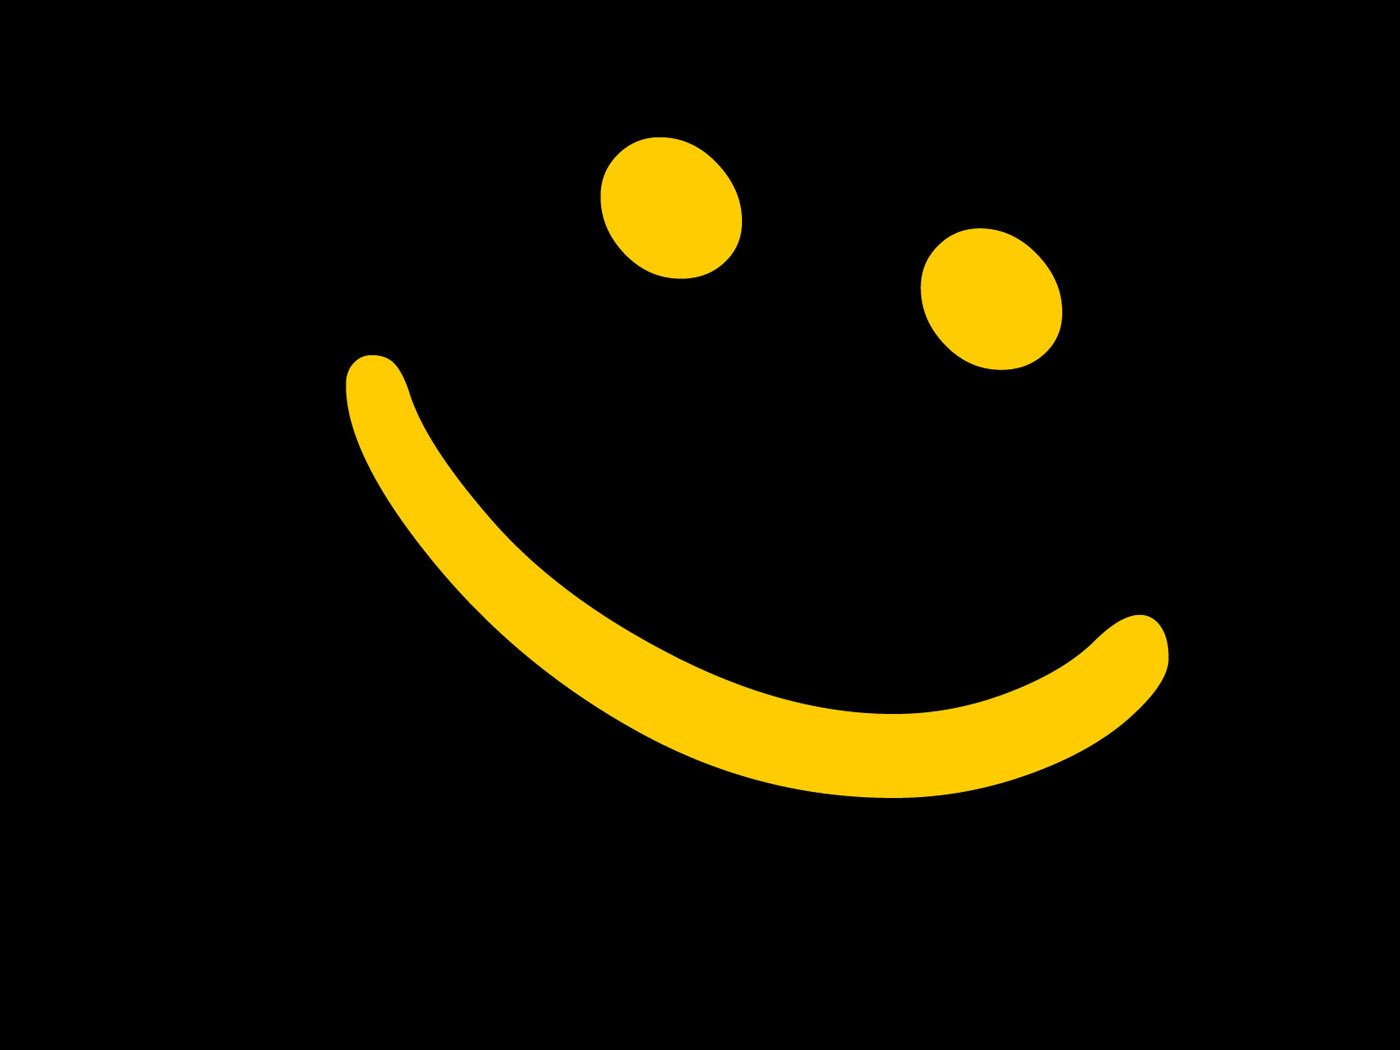 Smile Wallpapers for Desktop - WallpaperSafari